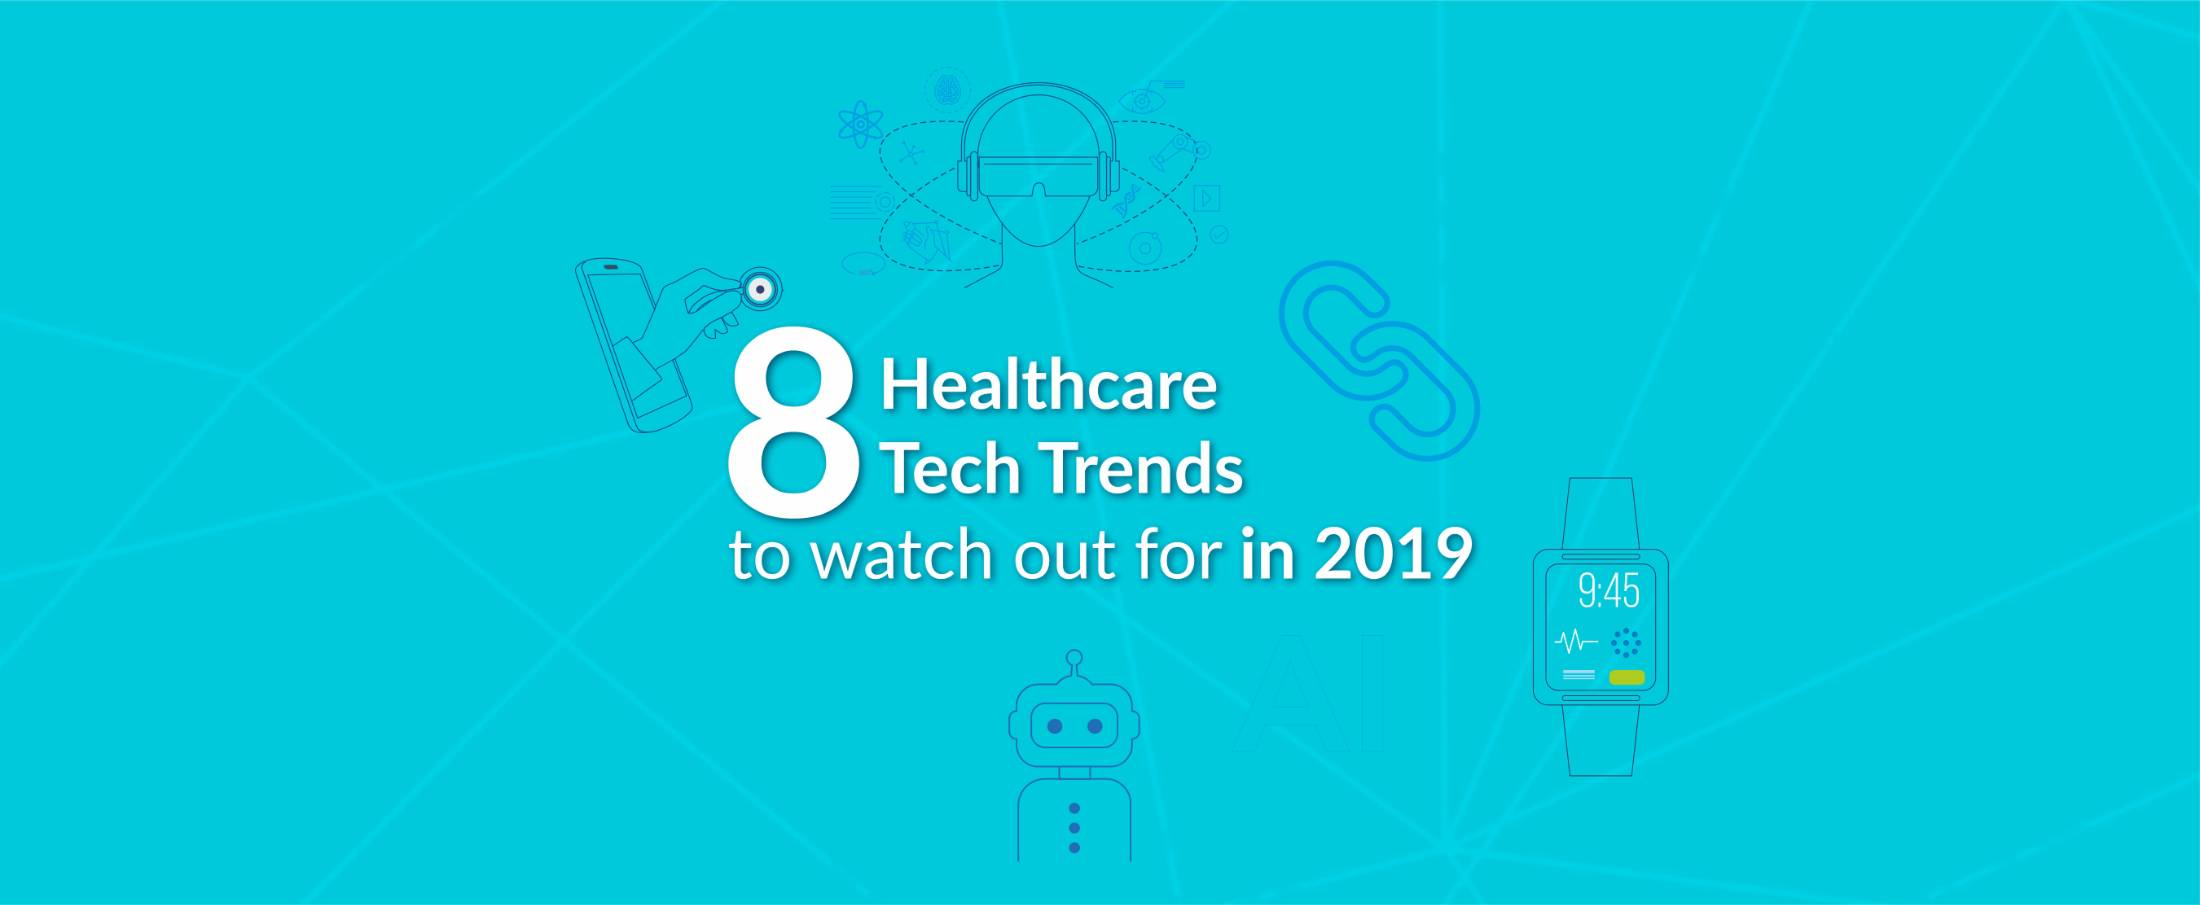 8 Healthcare Tech Trends to watch out for in 2019